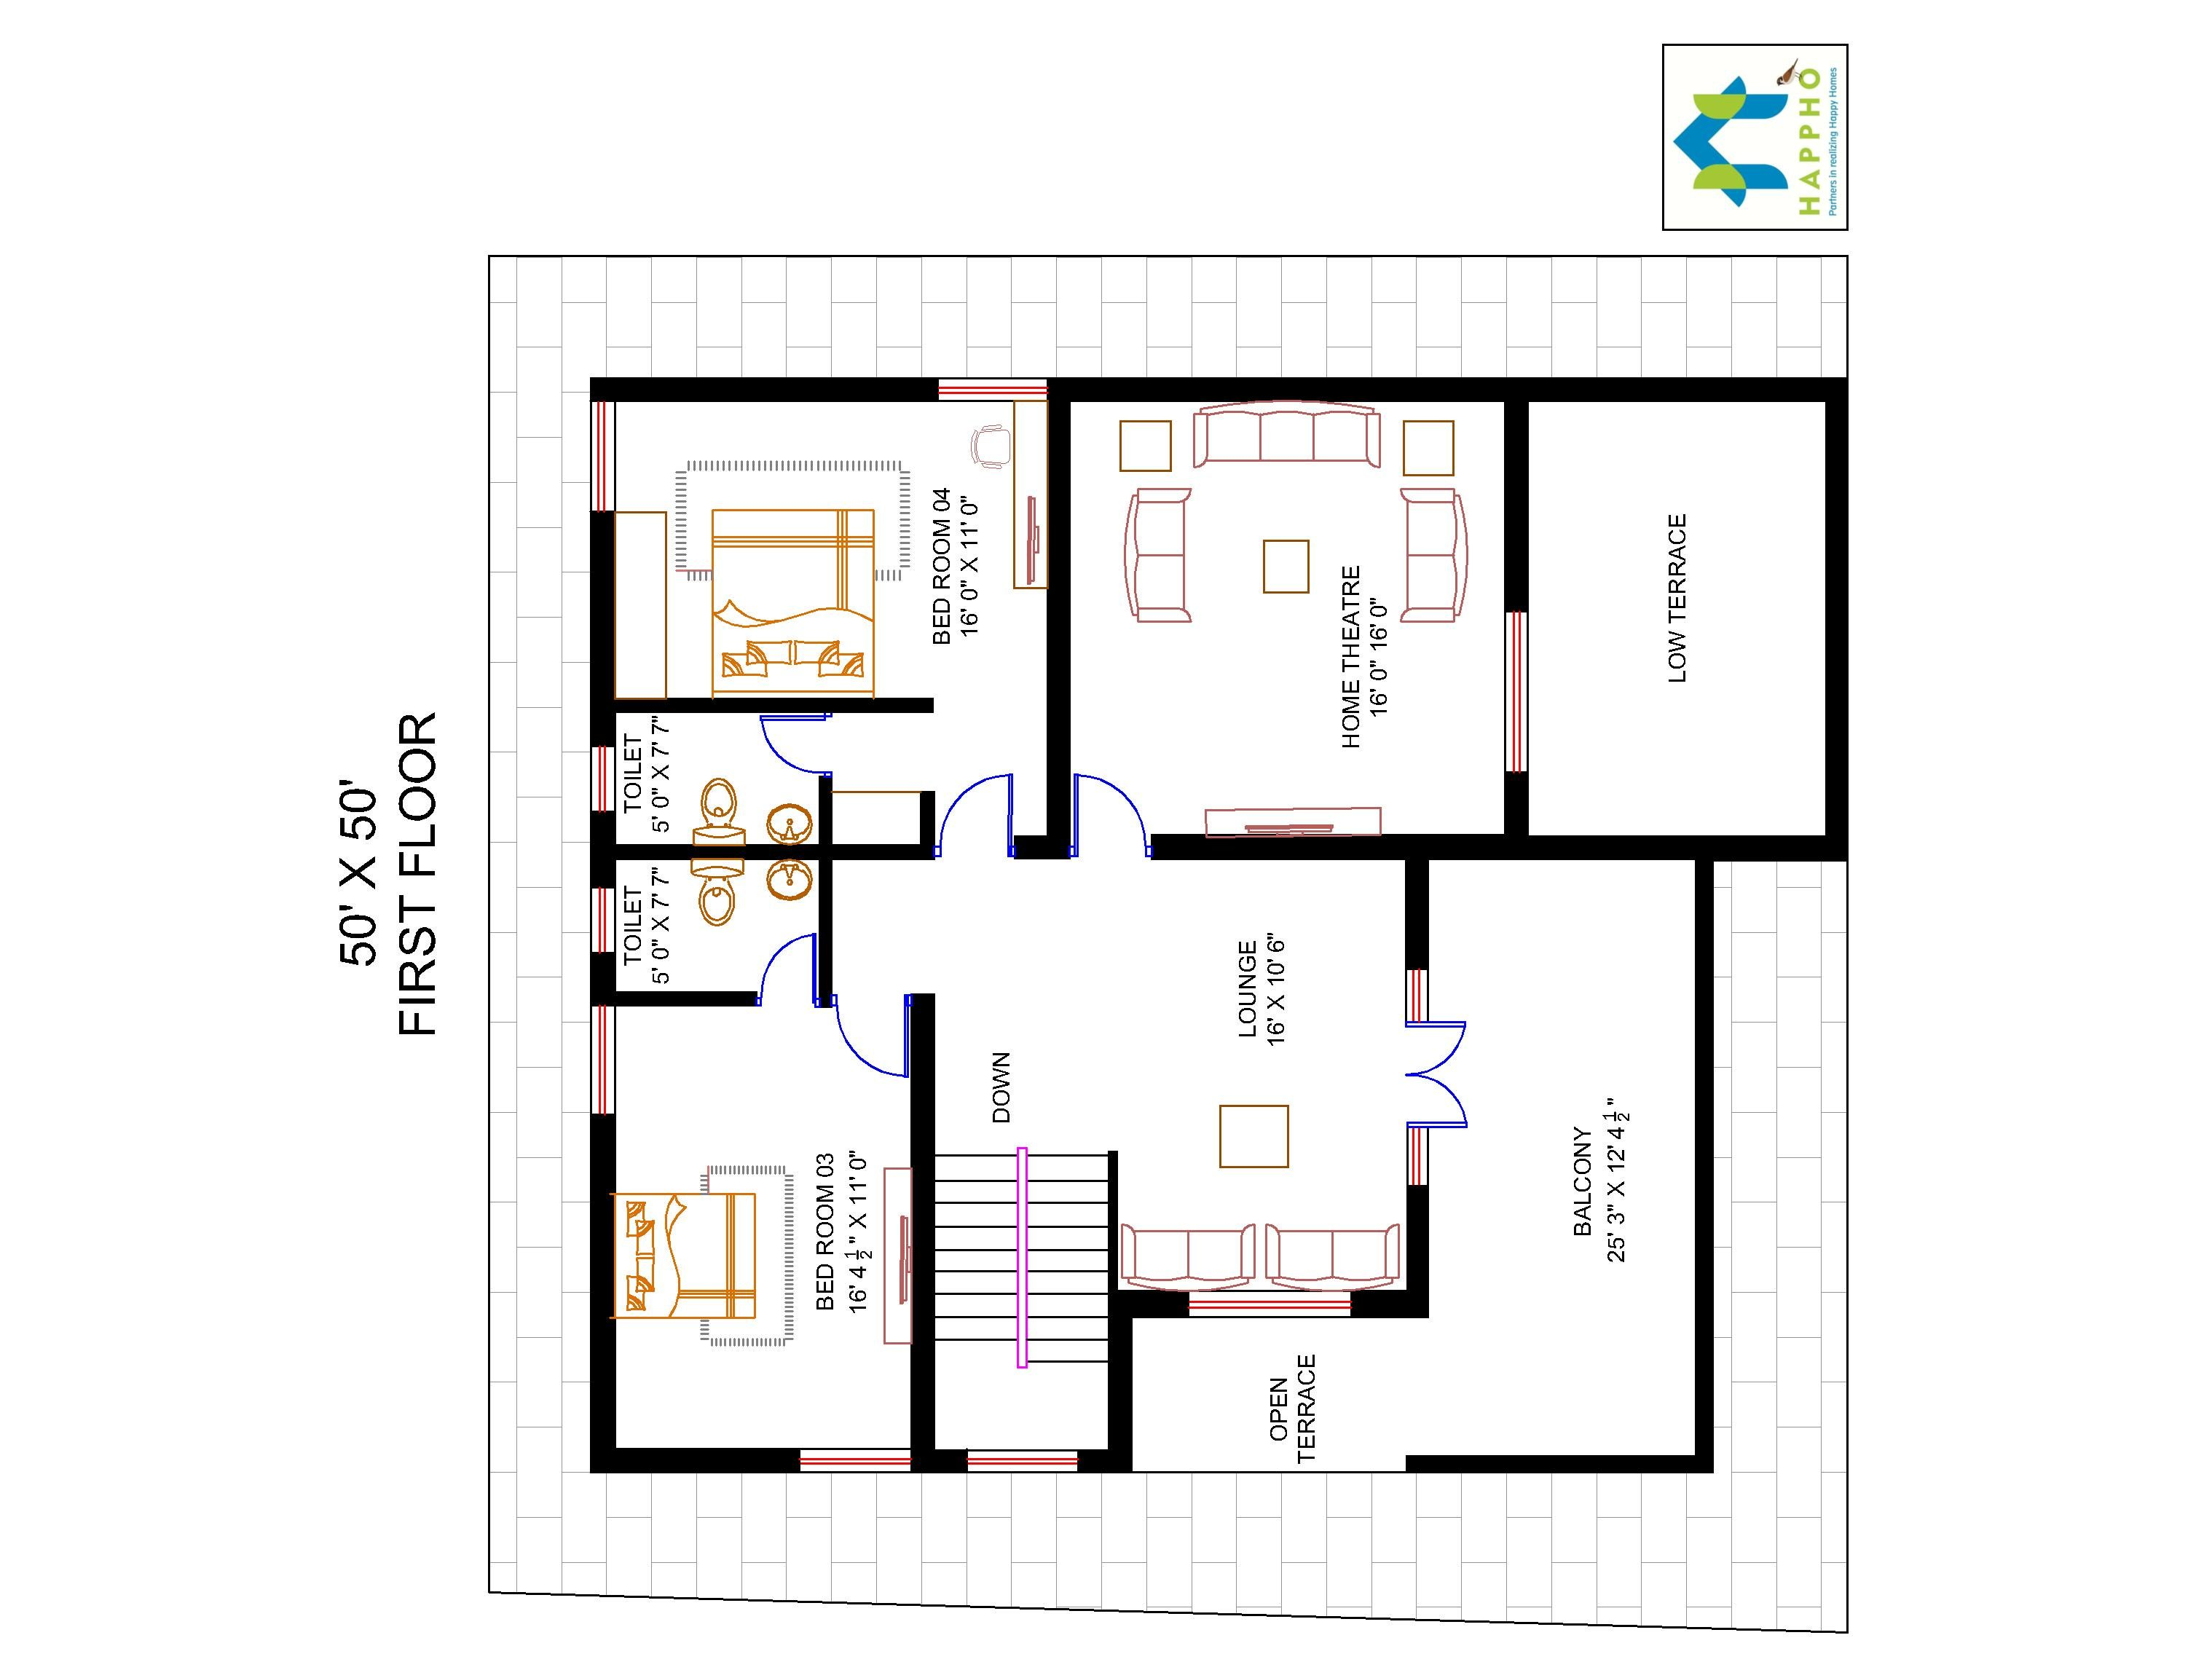 4 bhk floor plan for 50 x 50 plot 2500 square feet 278 for 2500 sq ft floor plans